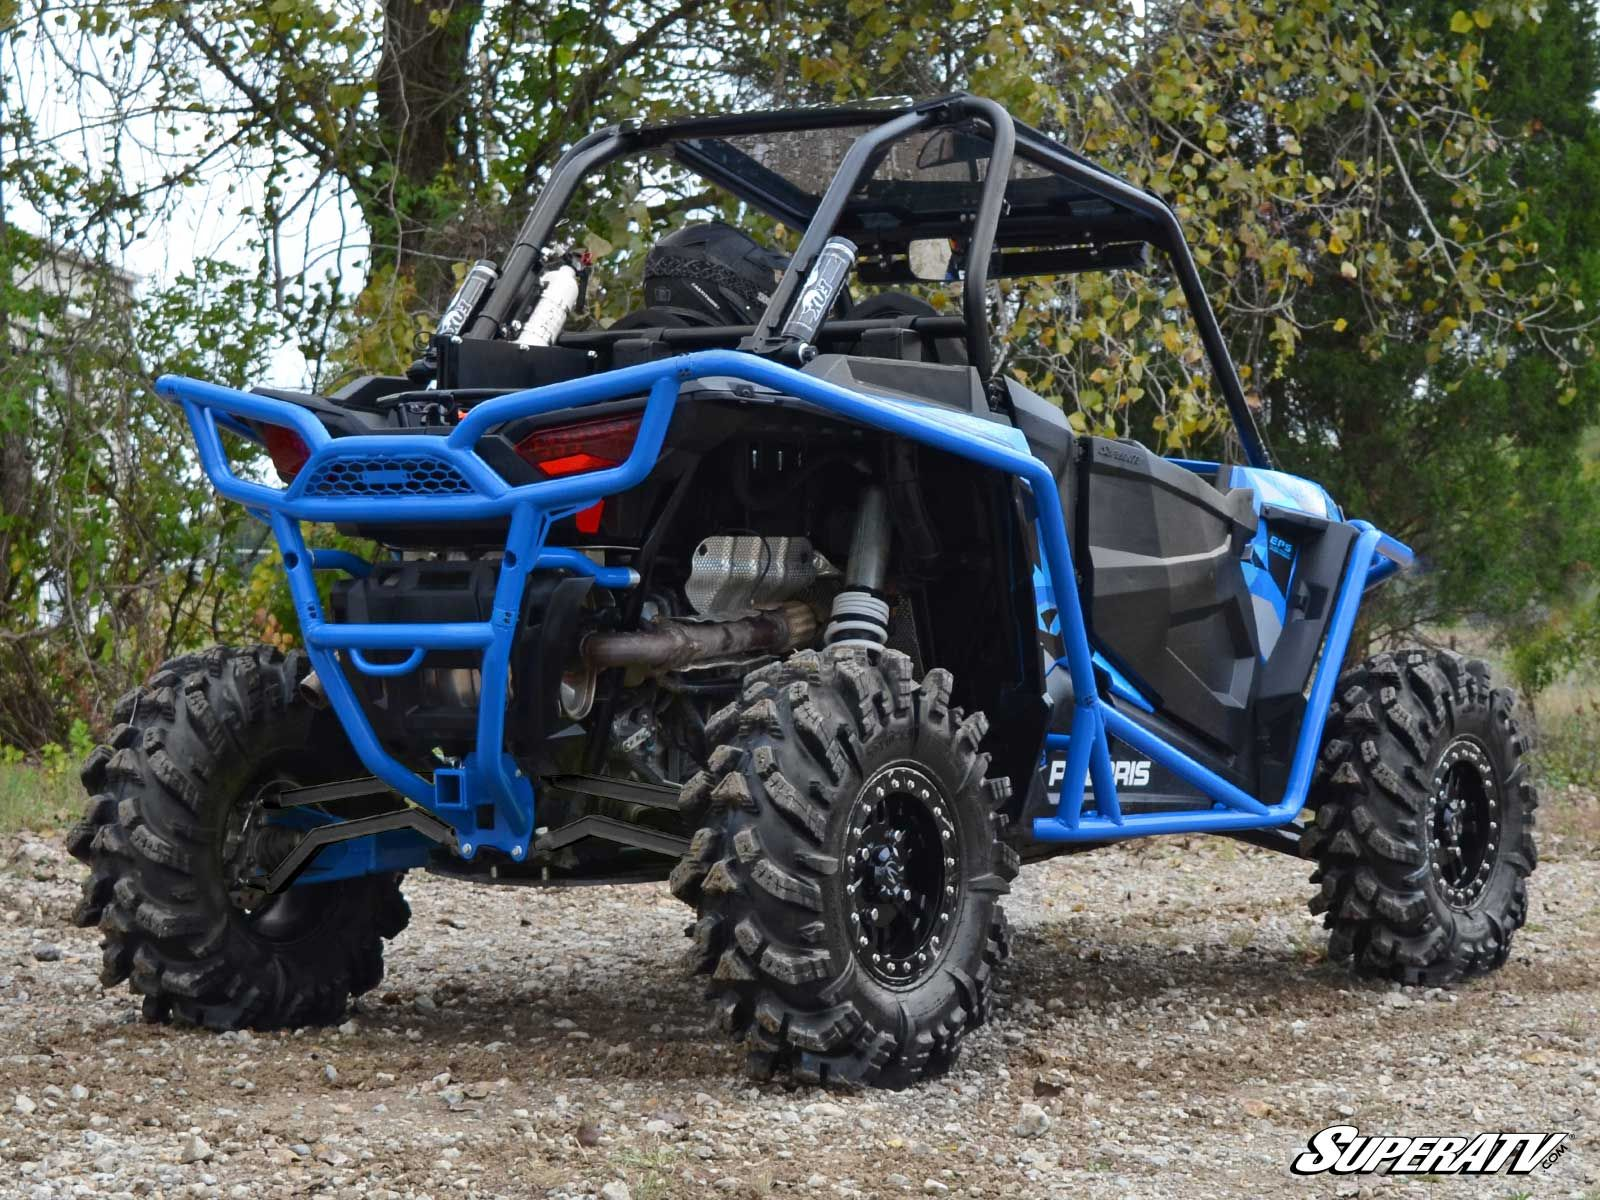 super atv polaris rzr 1000 full protection kit ready nerf bars. Black Bedroom Furniture Sets. Home Design Ideas